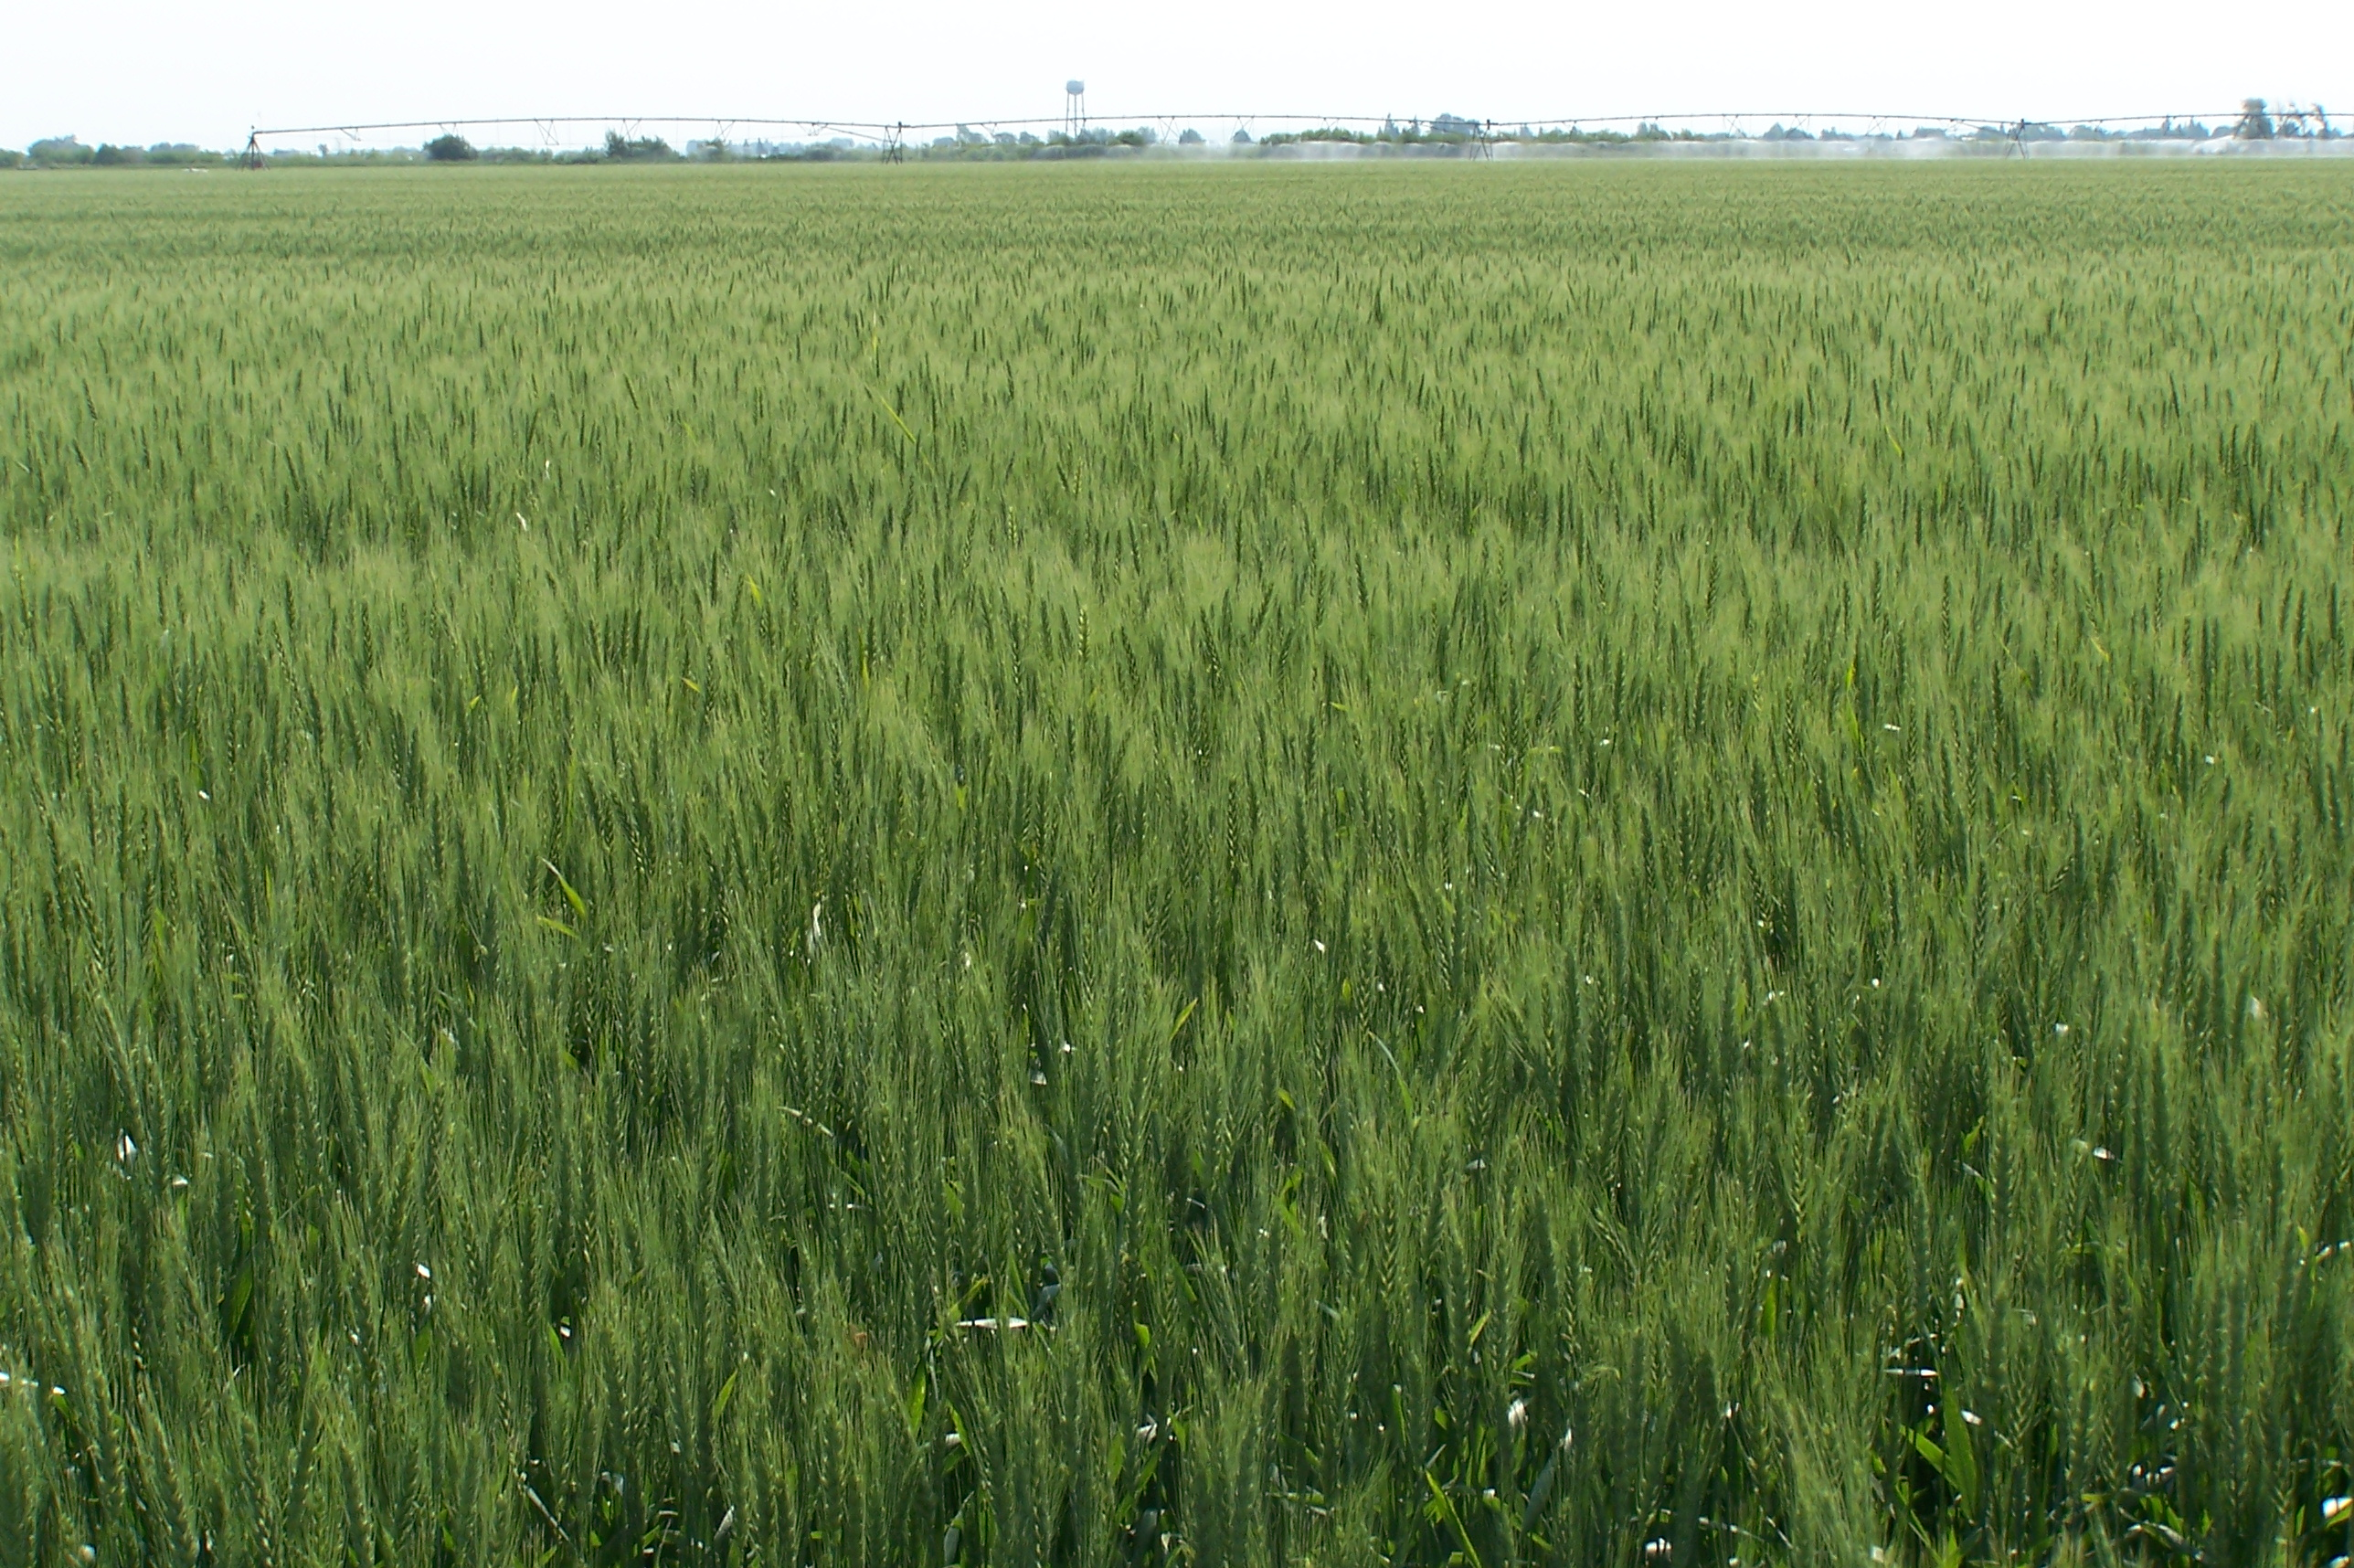 Agronomic image of spring wheat